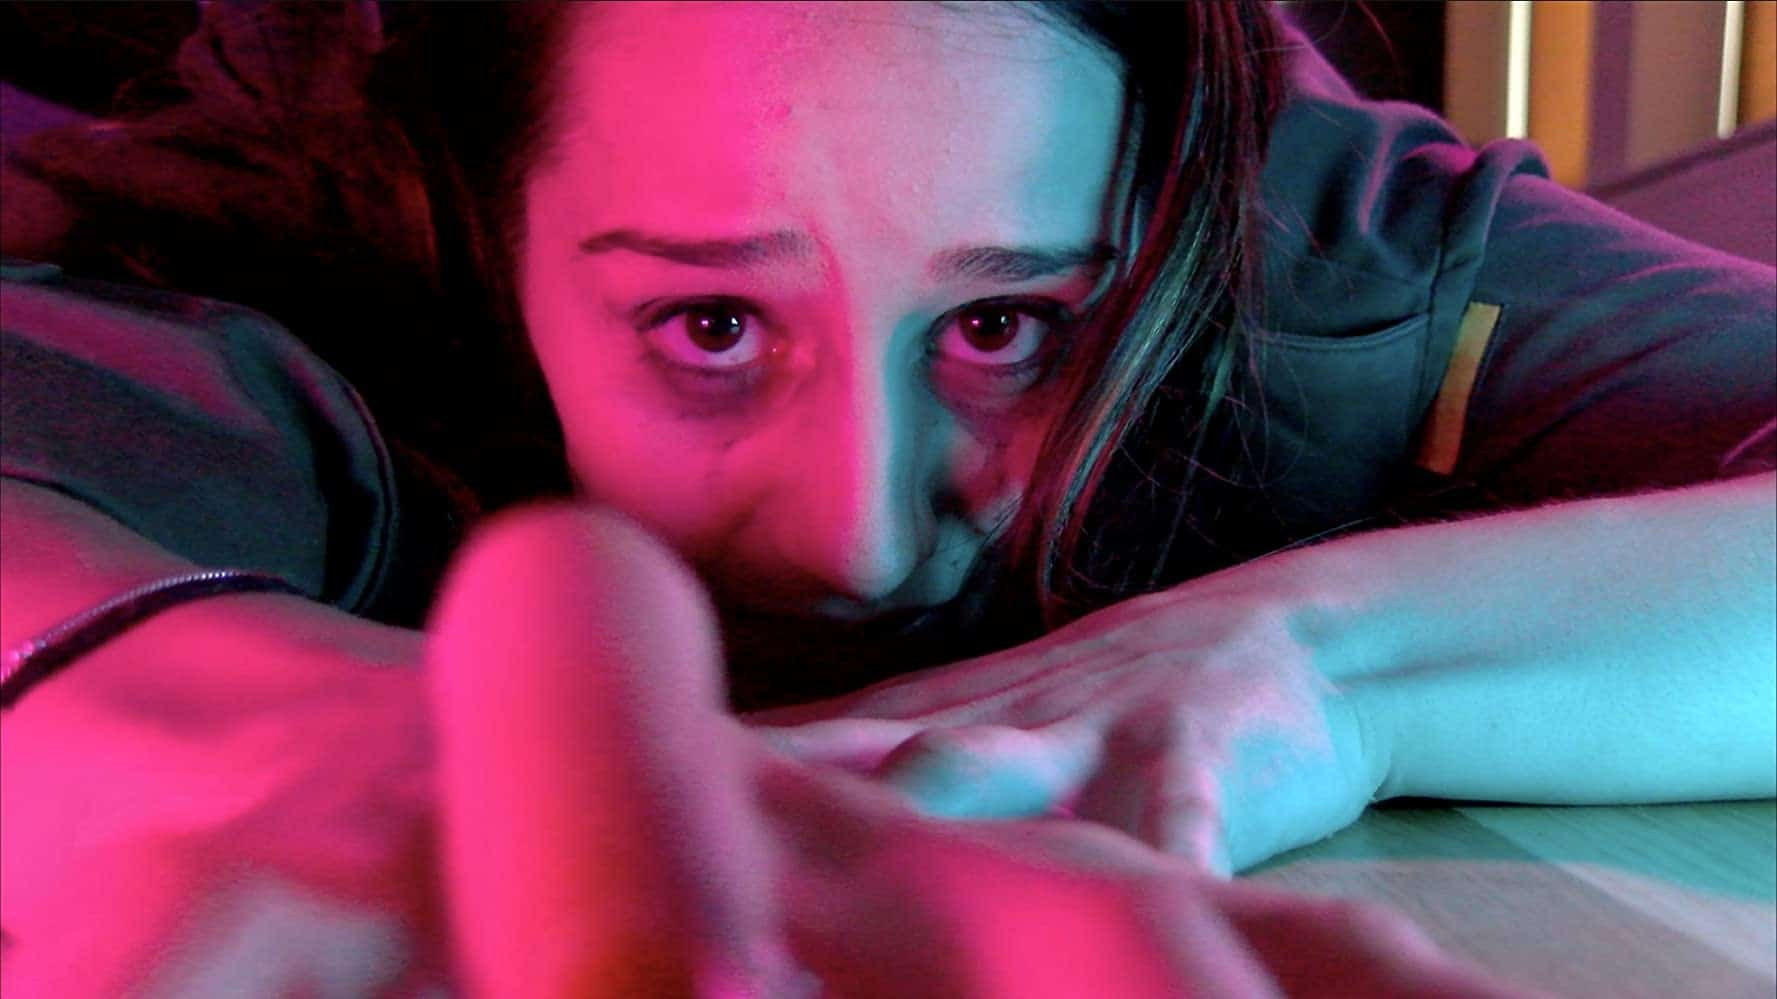 Joseph's Review: Exit (Twisted Dreams Film Festival)